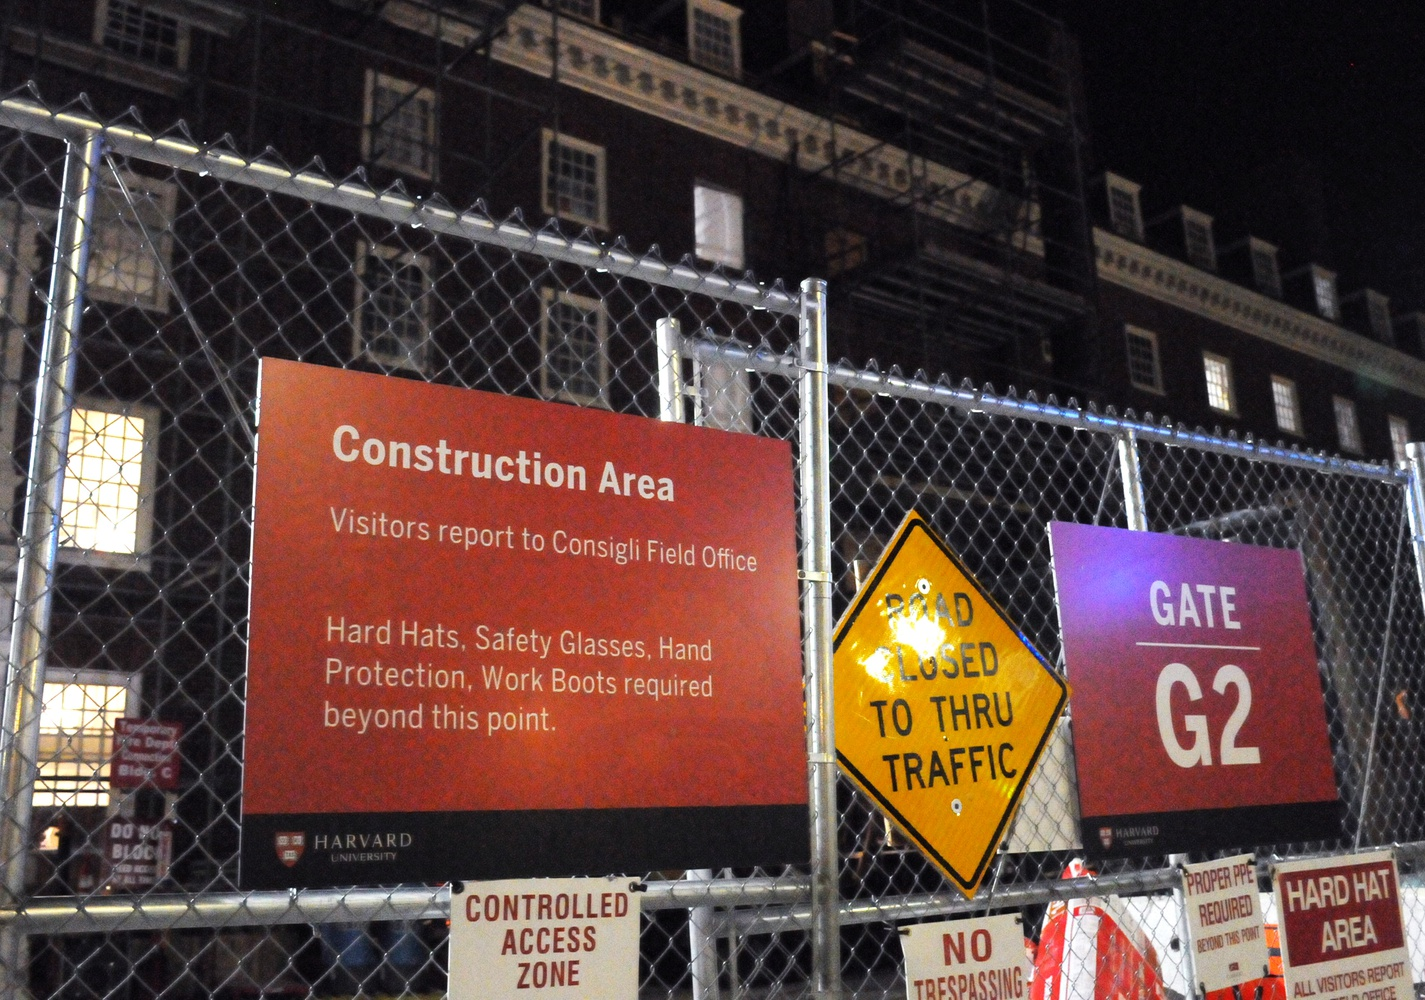 Lowell House is expected to be under construction until the fall of 2019, so in the meantime its residents have been relocated to the Inn and other ancillary buildings.